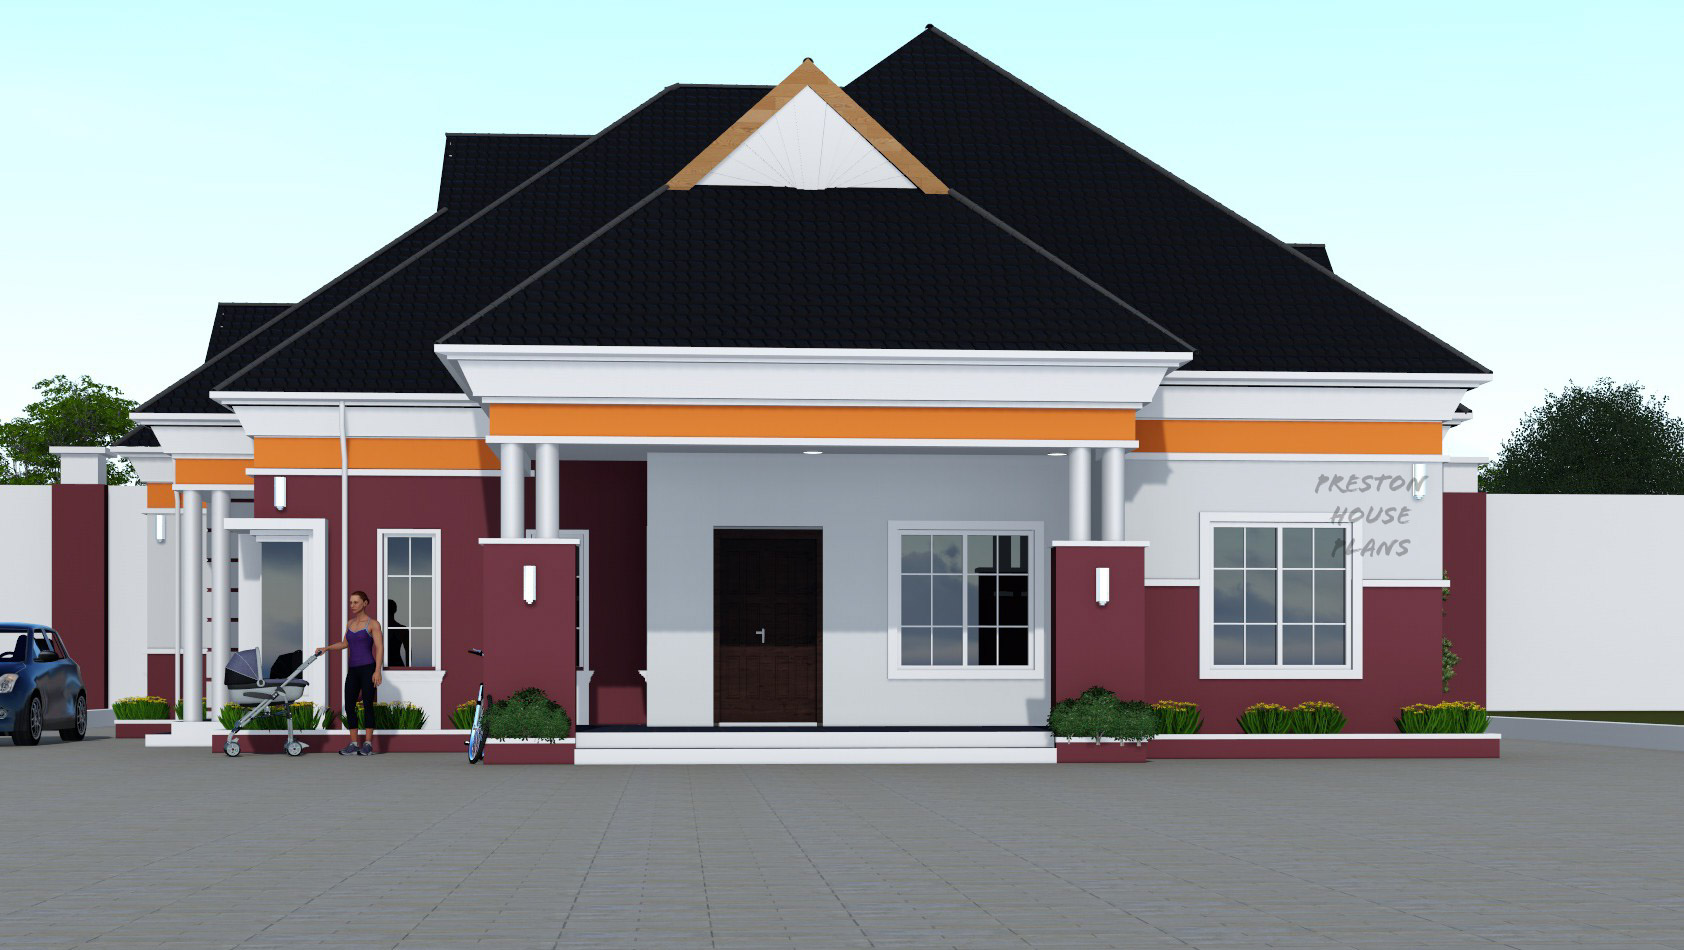 Three bedroom bungalow front view